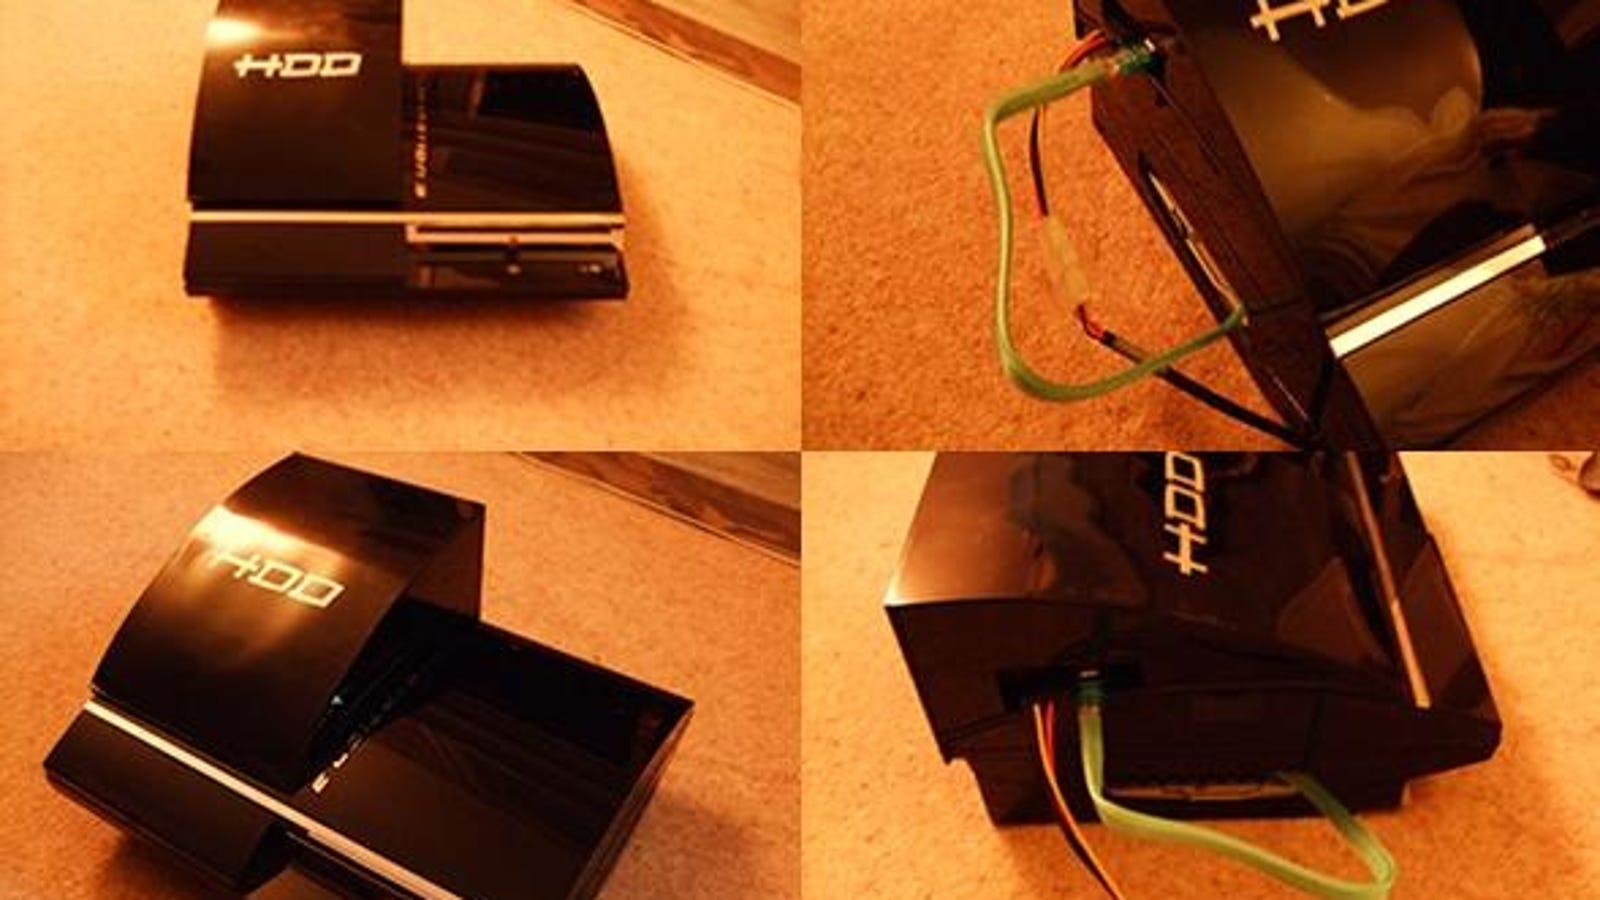 PlayStation 3 External Hard Drive Mod Is Great Work For ...